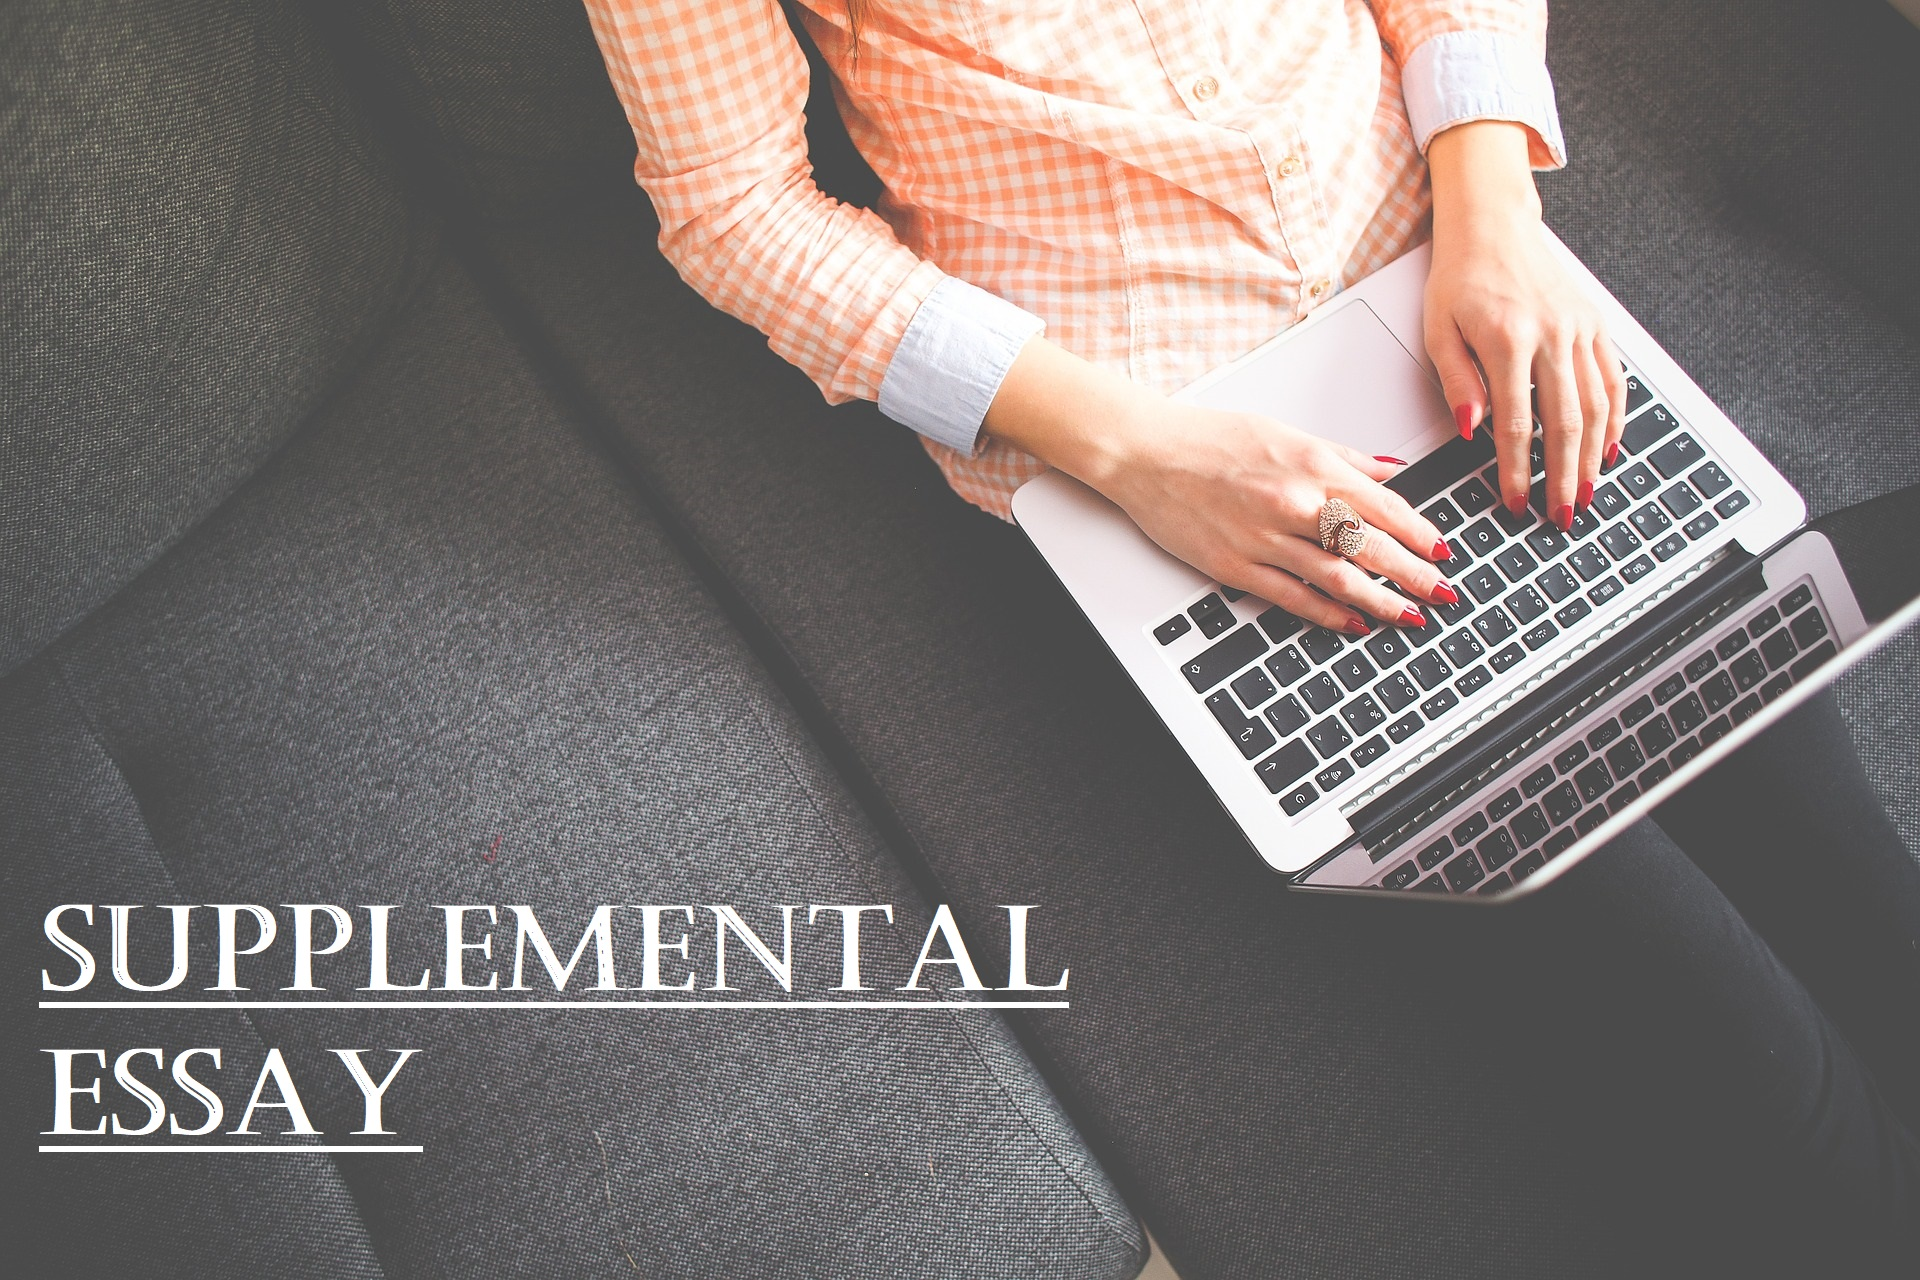 How to Write a Supplemental Essay